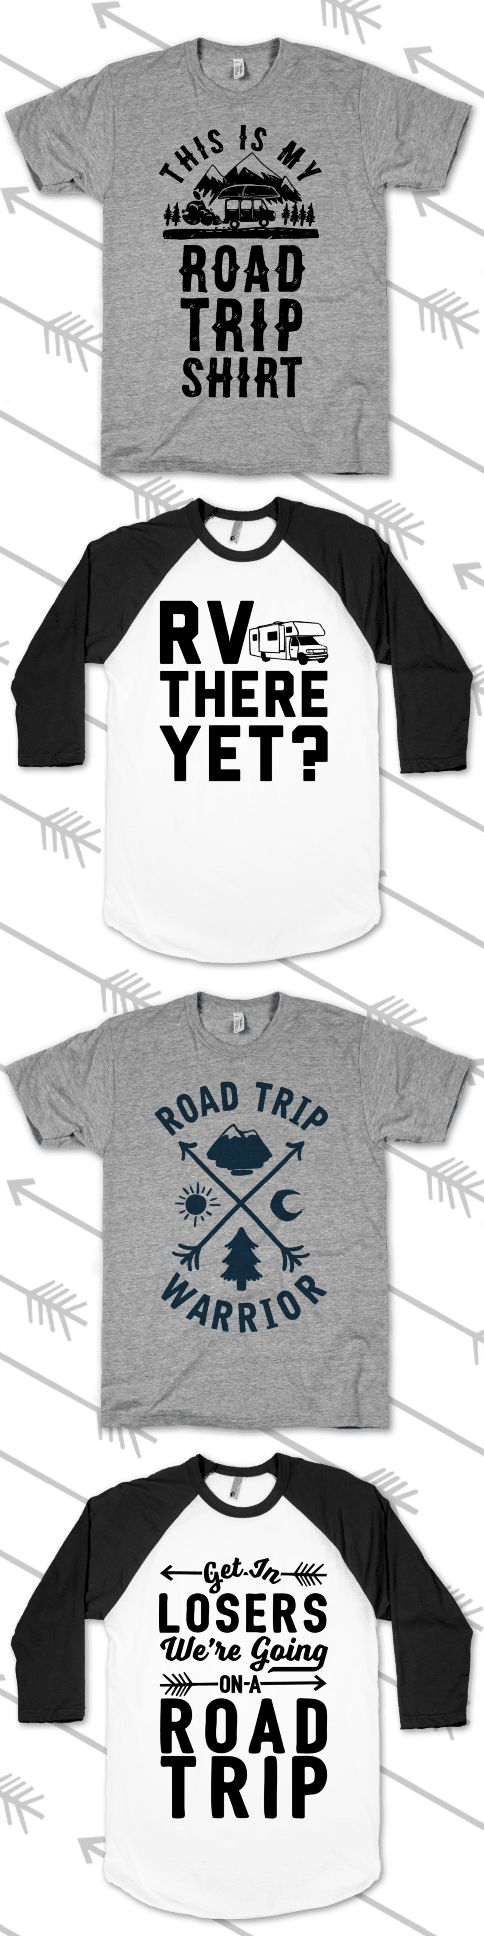 Make time for a road trip to drive off that winter wanderlust. Grab these shirts, pack the car, and head off on a long weekend trip!